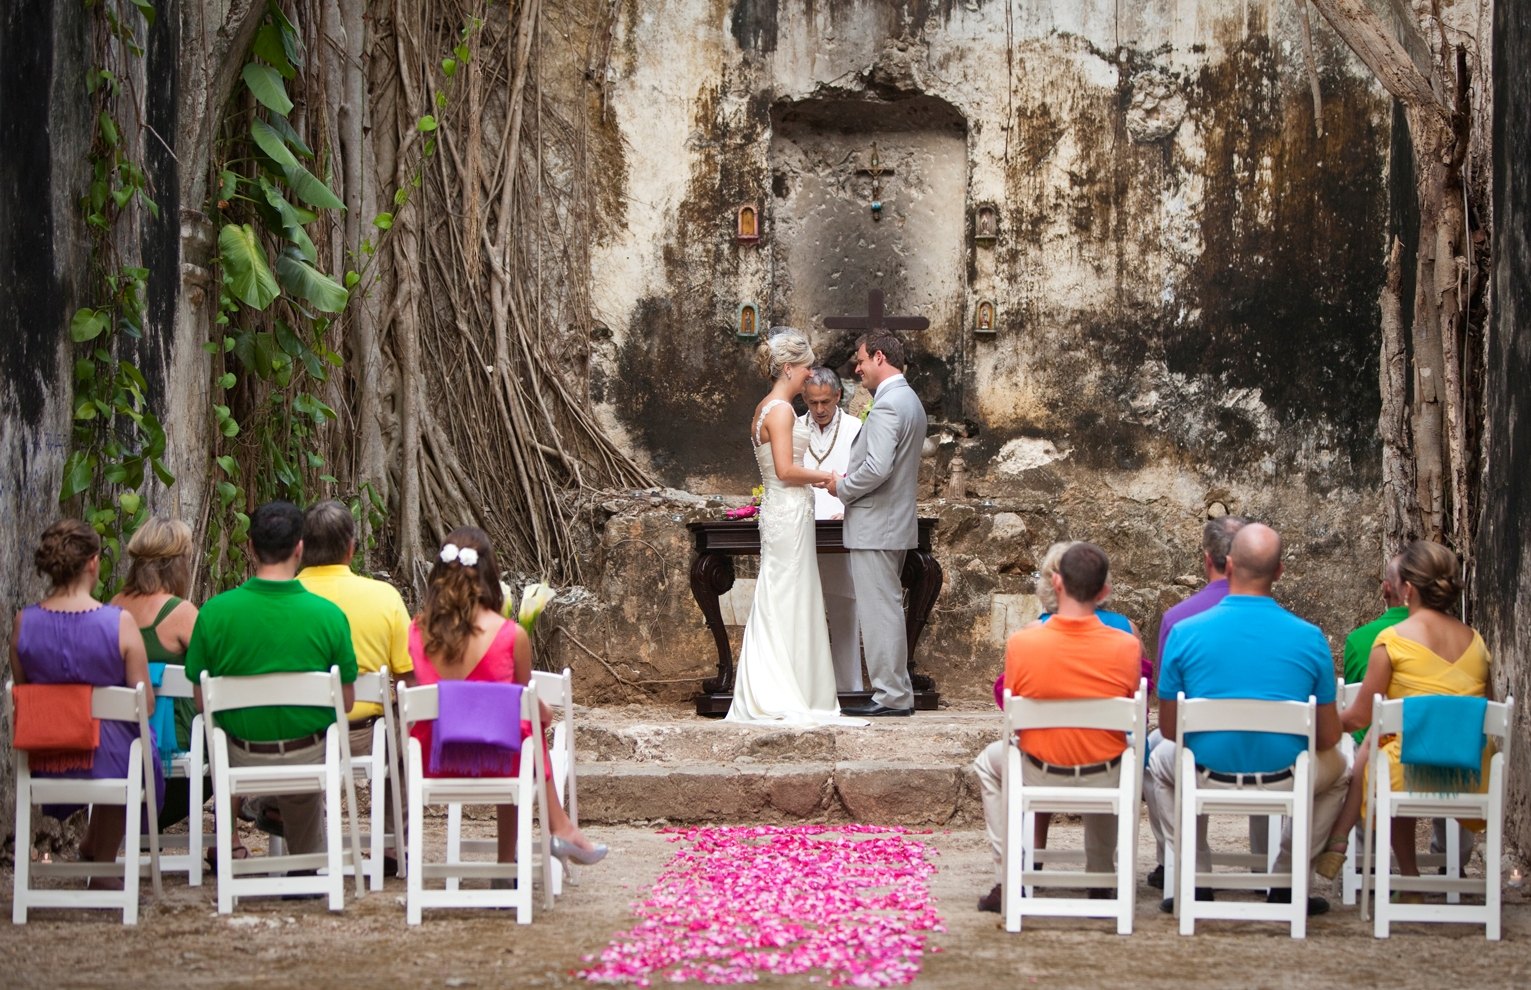 FOR MORE INFORMATION OR GUIDANCE ON DESTINATION WEDDINGS IN MEXICO